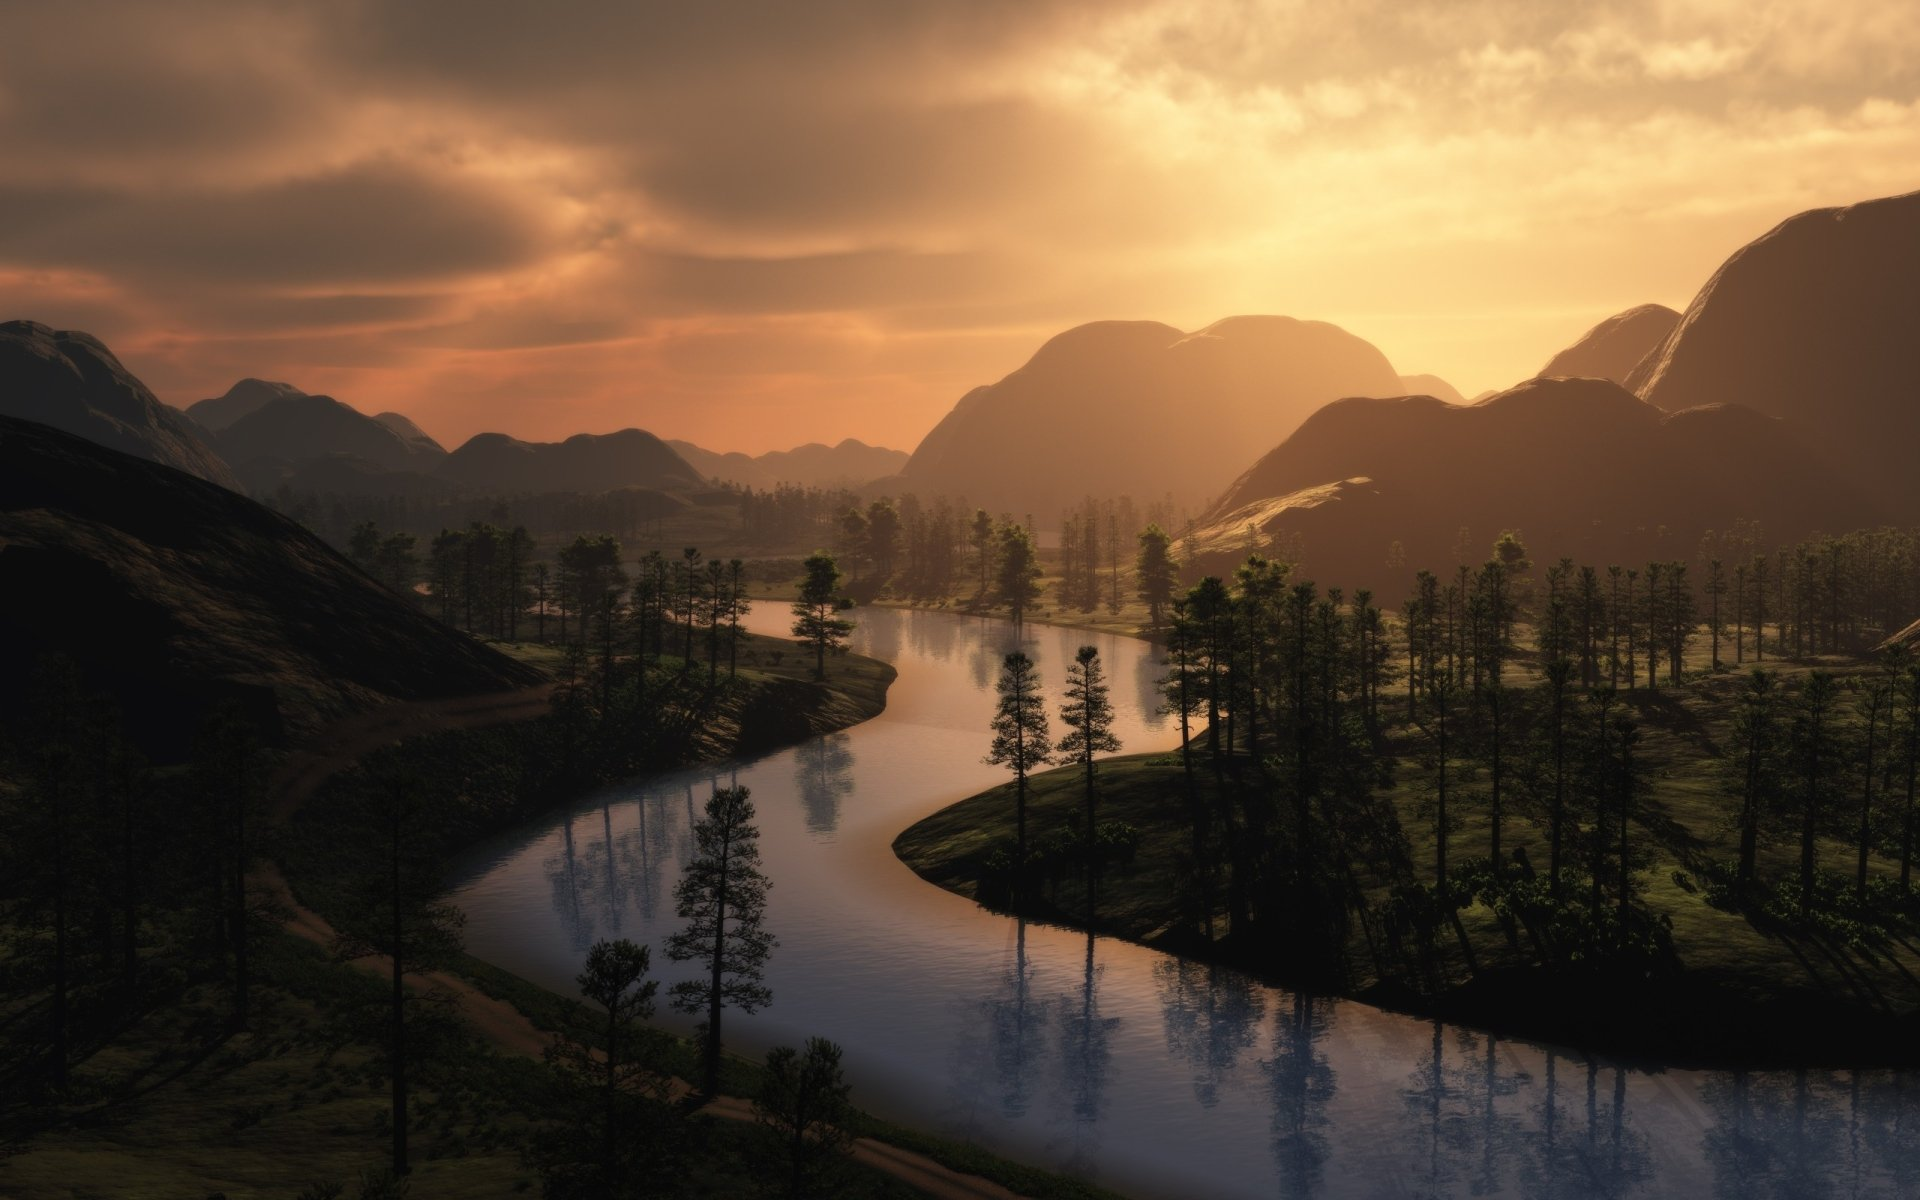 CGI - Natuur  Valley Boom Rivier Water Berg Wallpaper